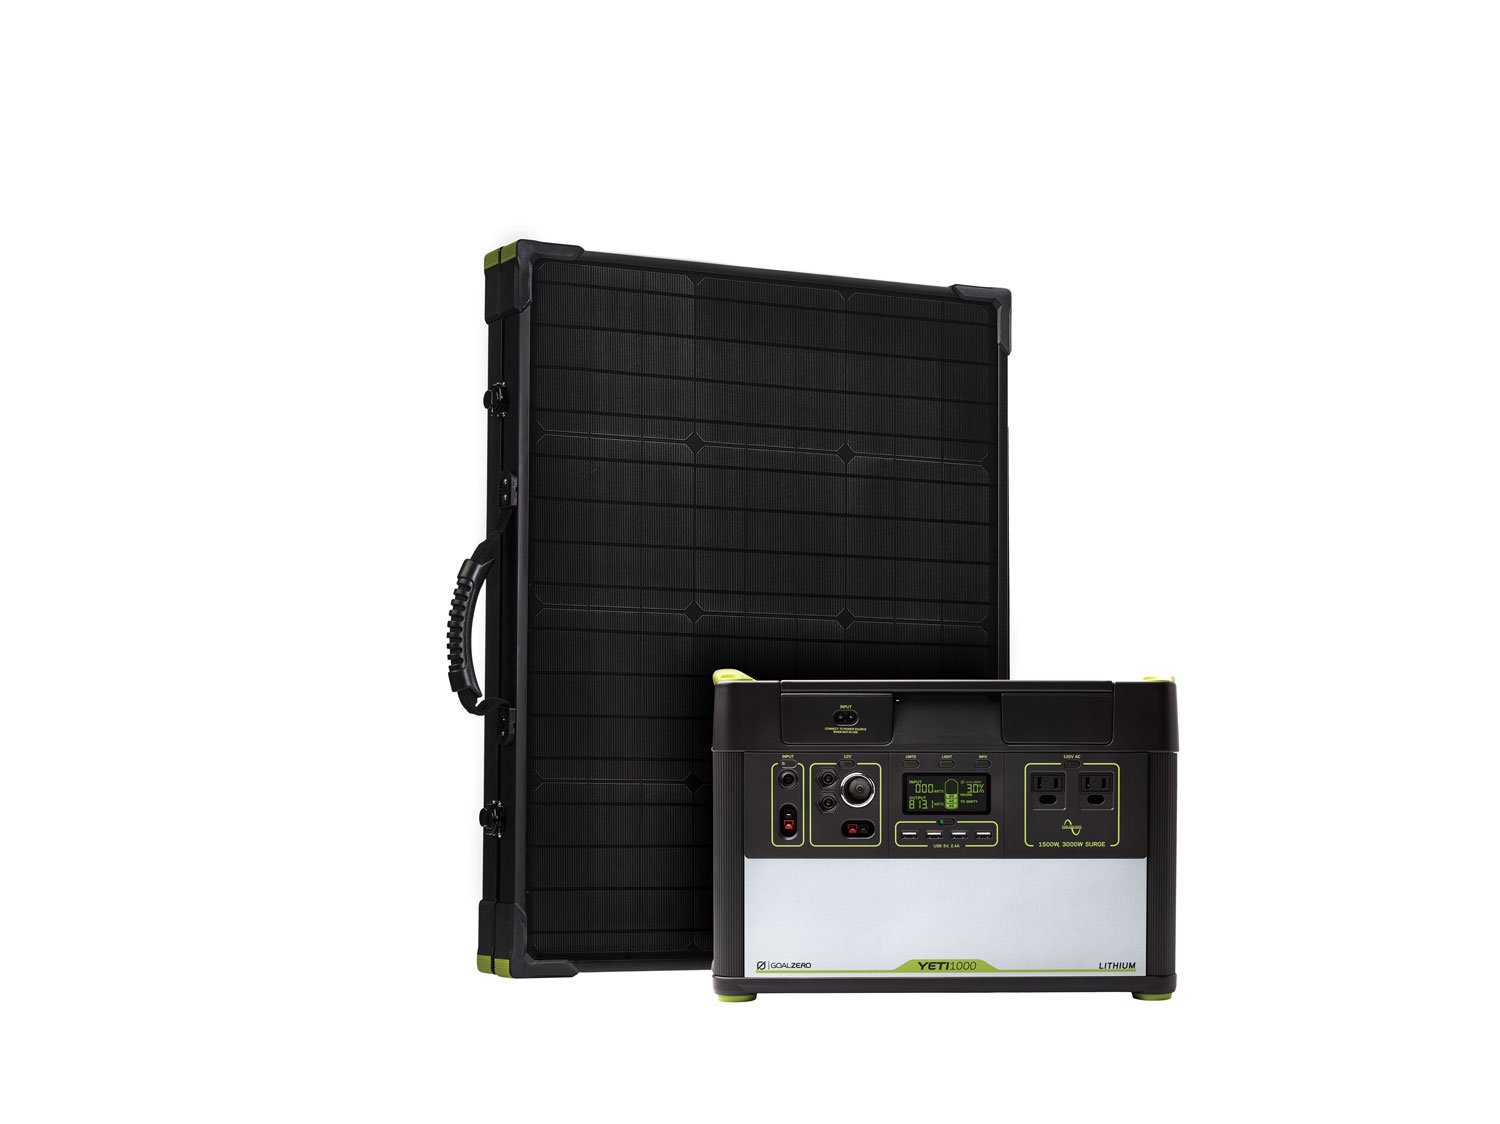 Goal Zero Yeti 1000 Lithium Solar Generator Kit With Boulder 100 Watt Briefcase Solar Panel